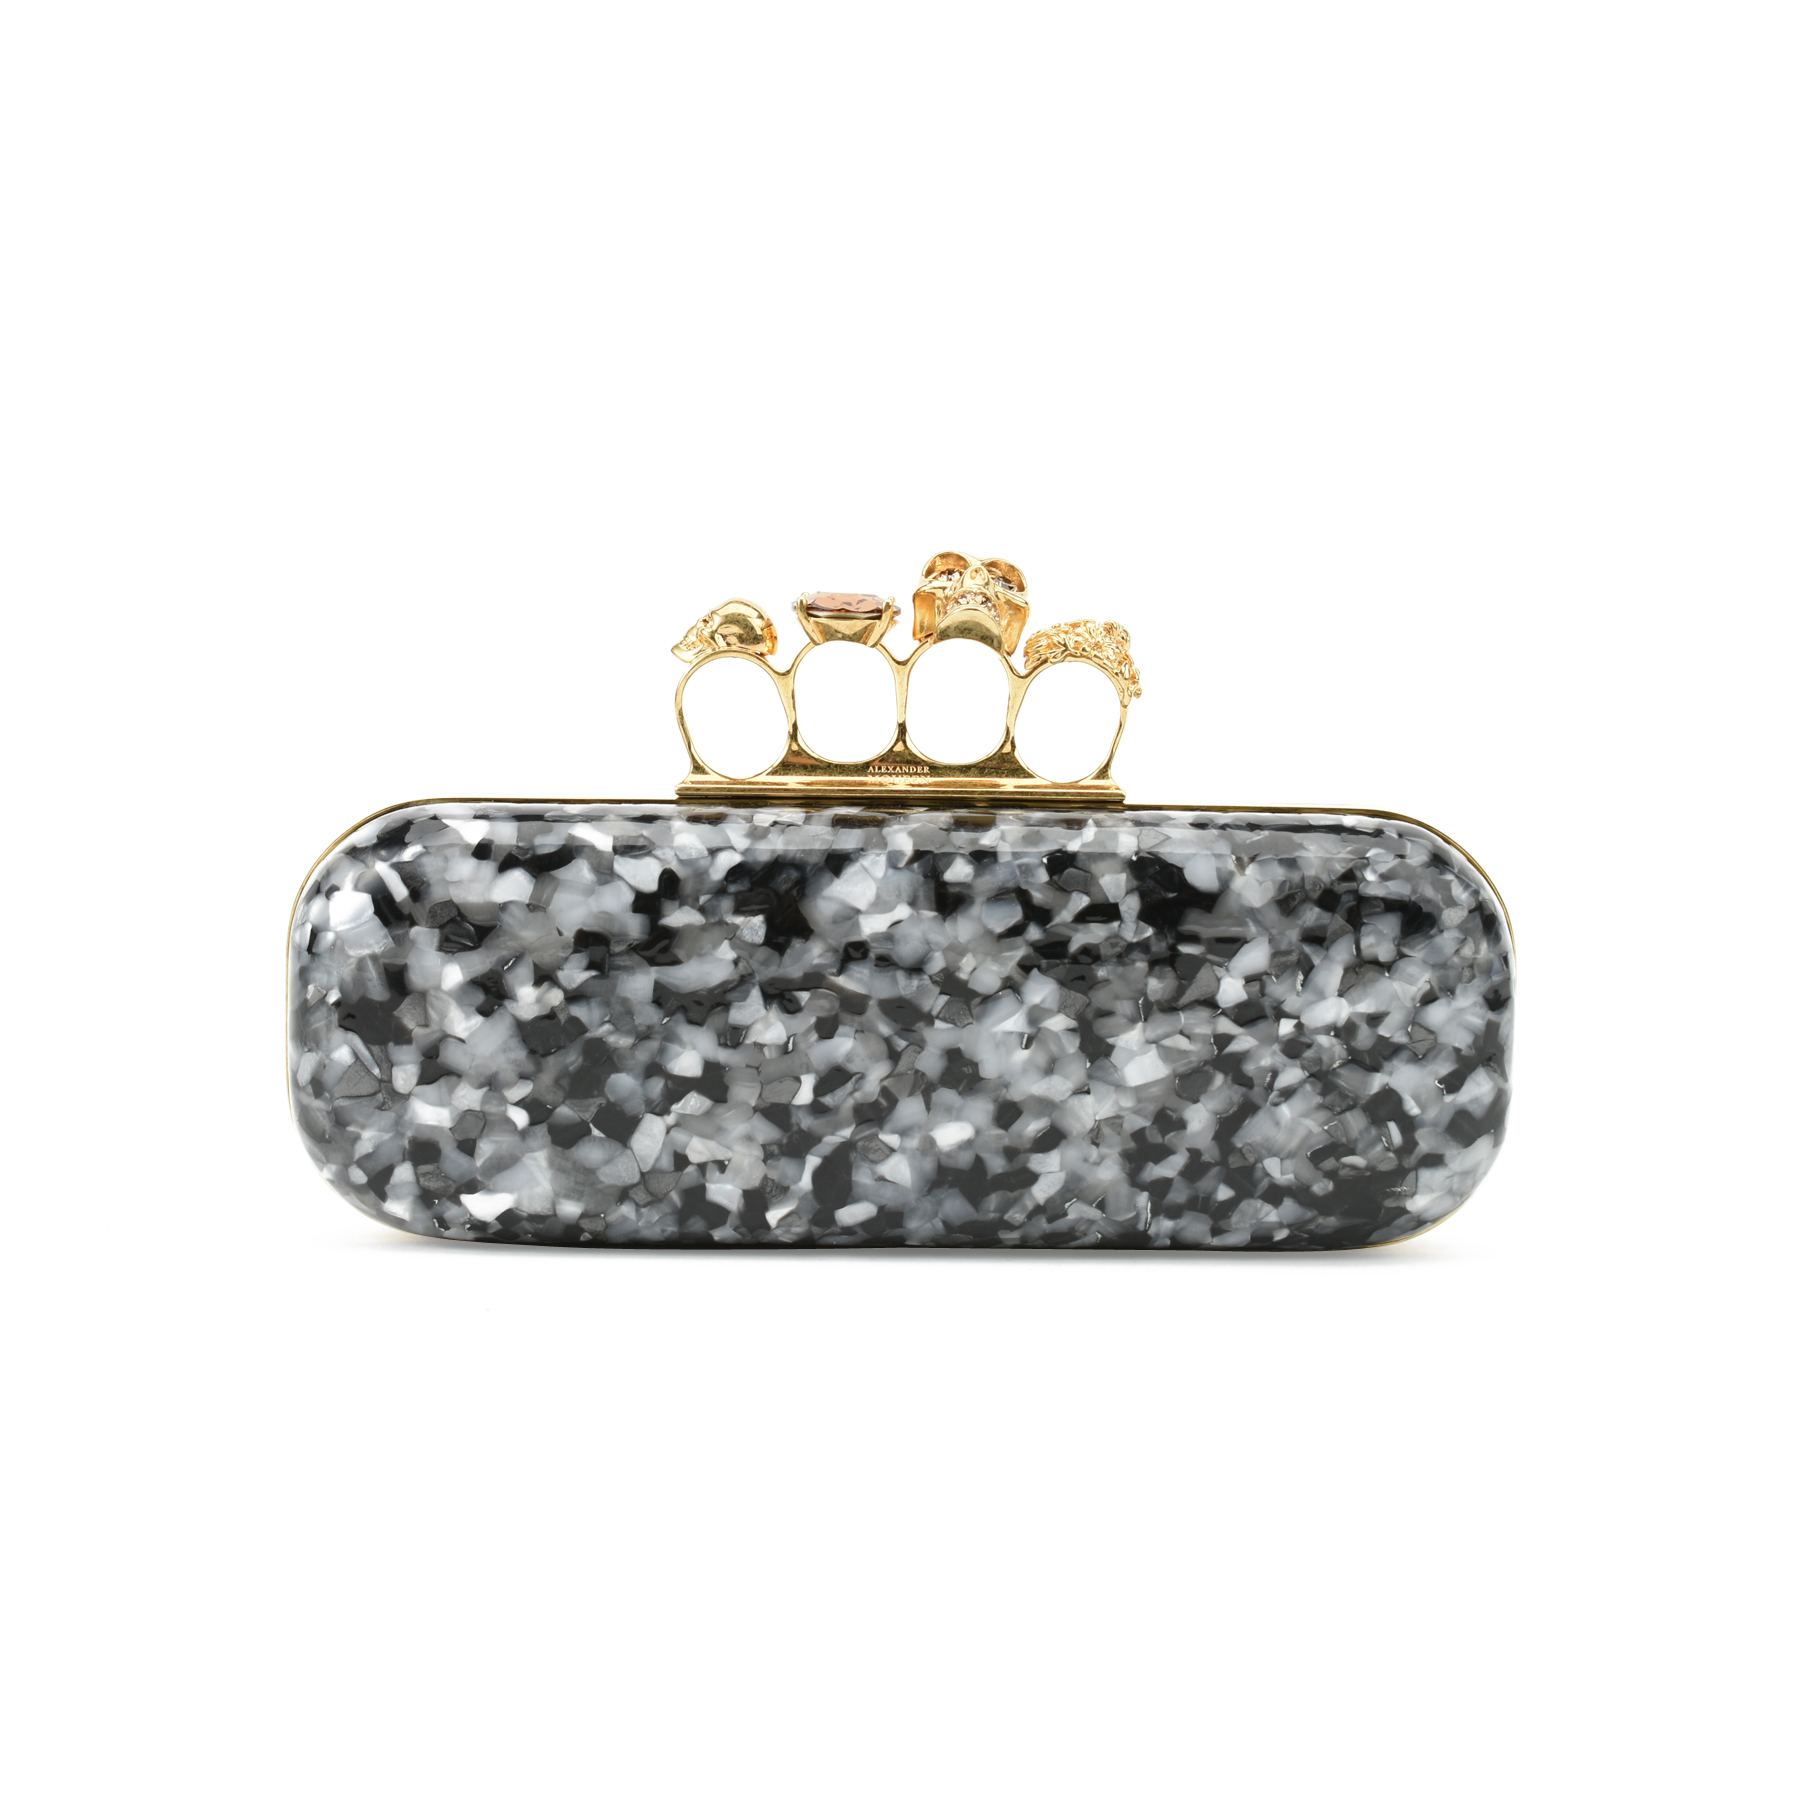 1c62cb39b935b Authentic Second Hand Alexander McQueen Plexiglass Knuckle Box Clutch  (PSS-357-00020) - THE FIFTH COLLECTION